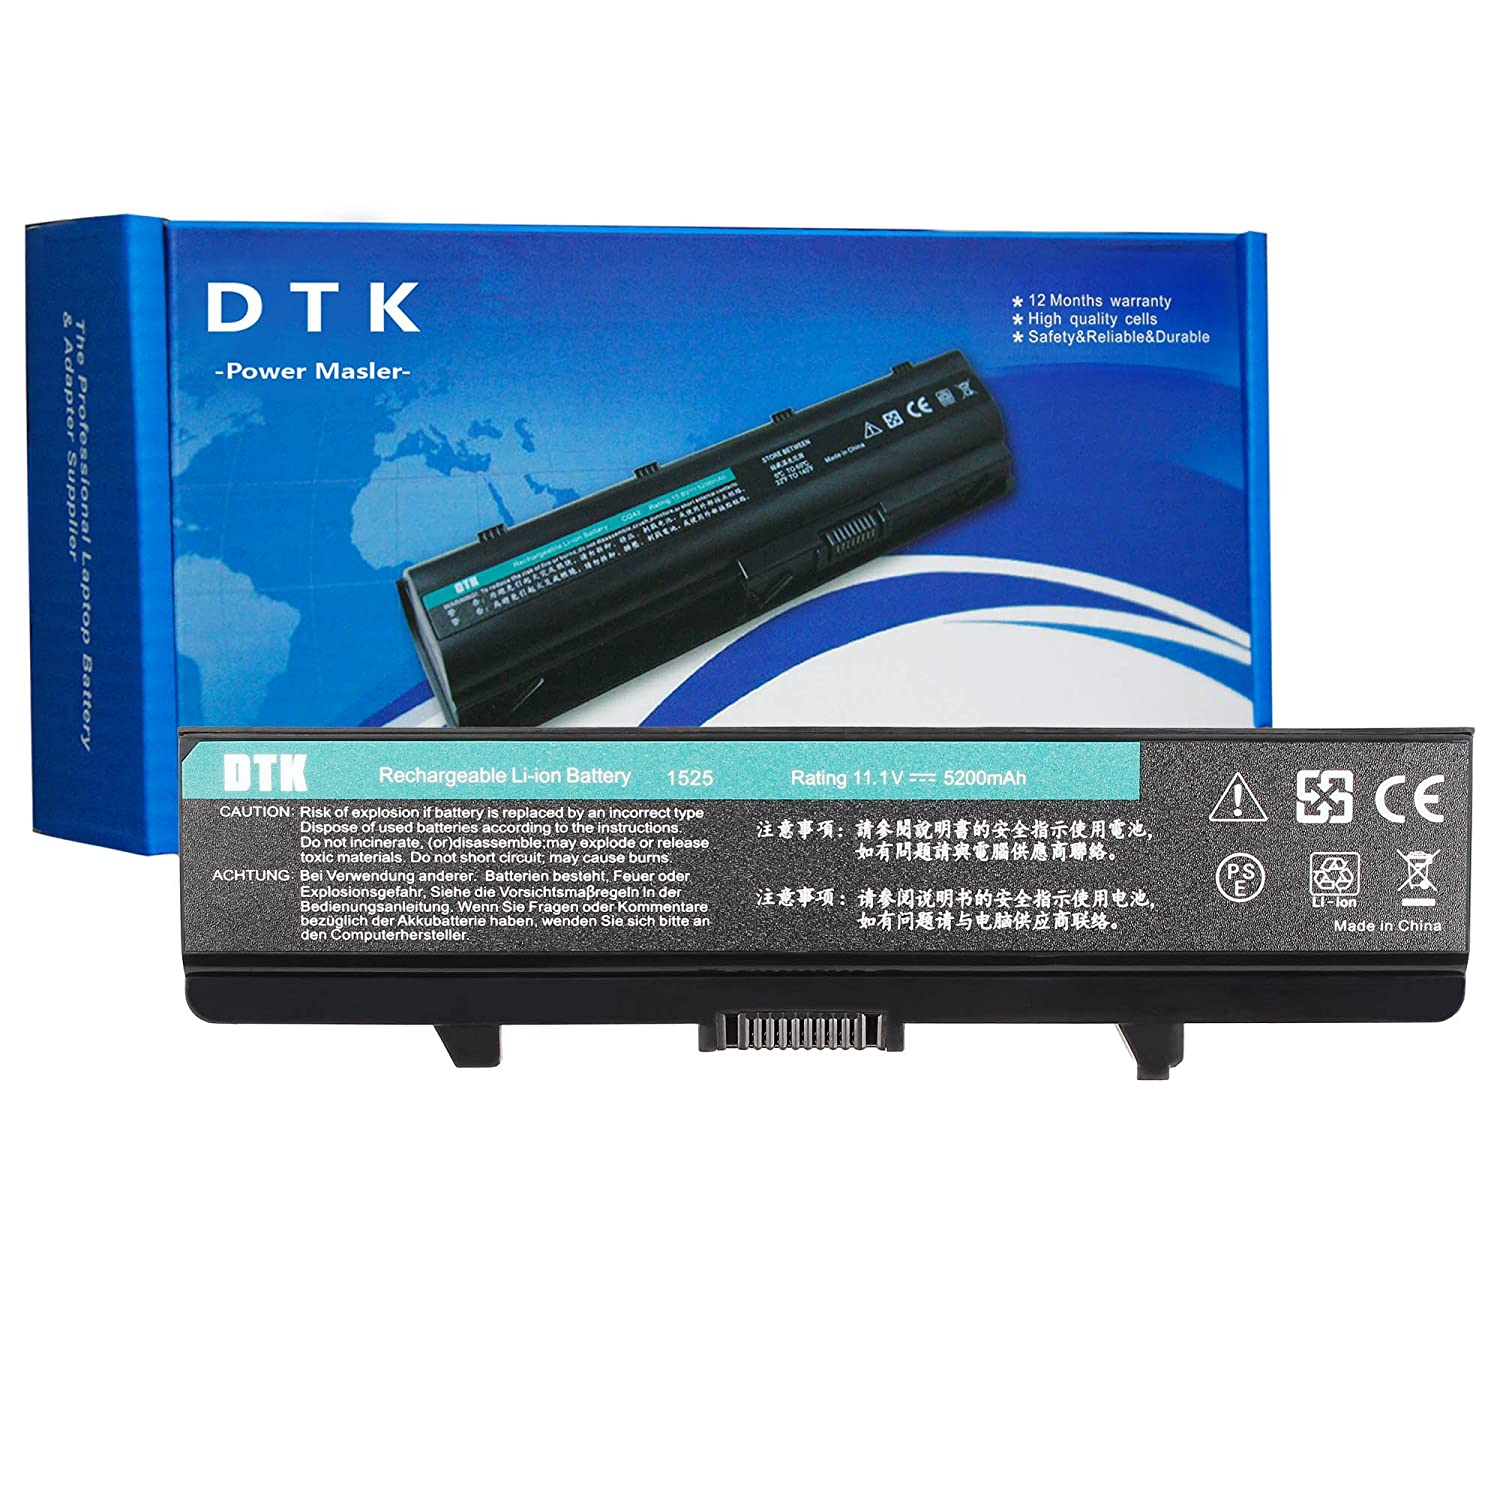 Amazon.com: Dtk Performance Laptop Battery for Dell Inspiron 1525 1526 1545  1546 1440 1750 Vostro 500 K450n [ 6-Cell 11.1v 4400mah / 48wh] Notebook PC  ...